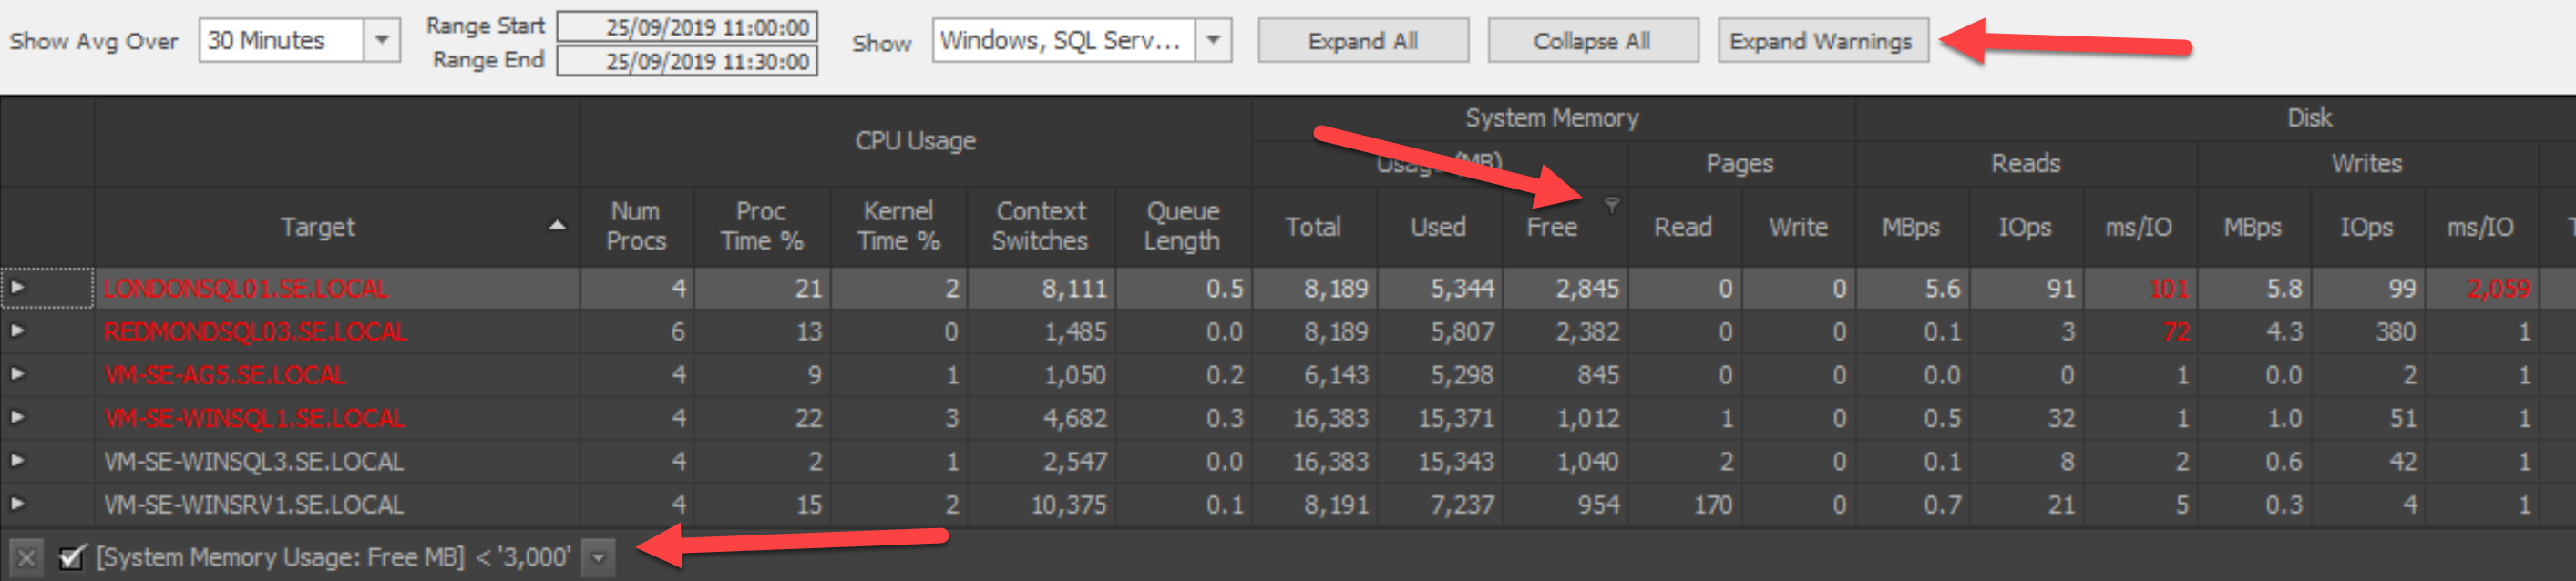 Filtering by System Memory Usage